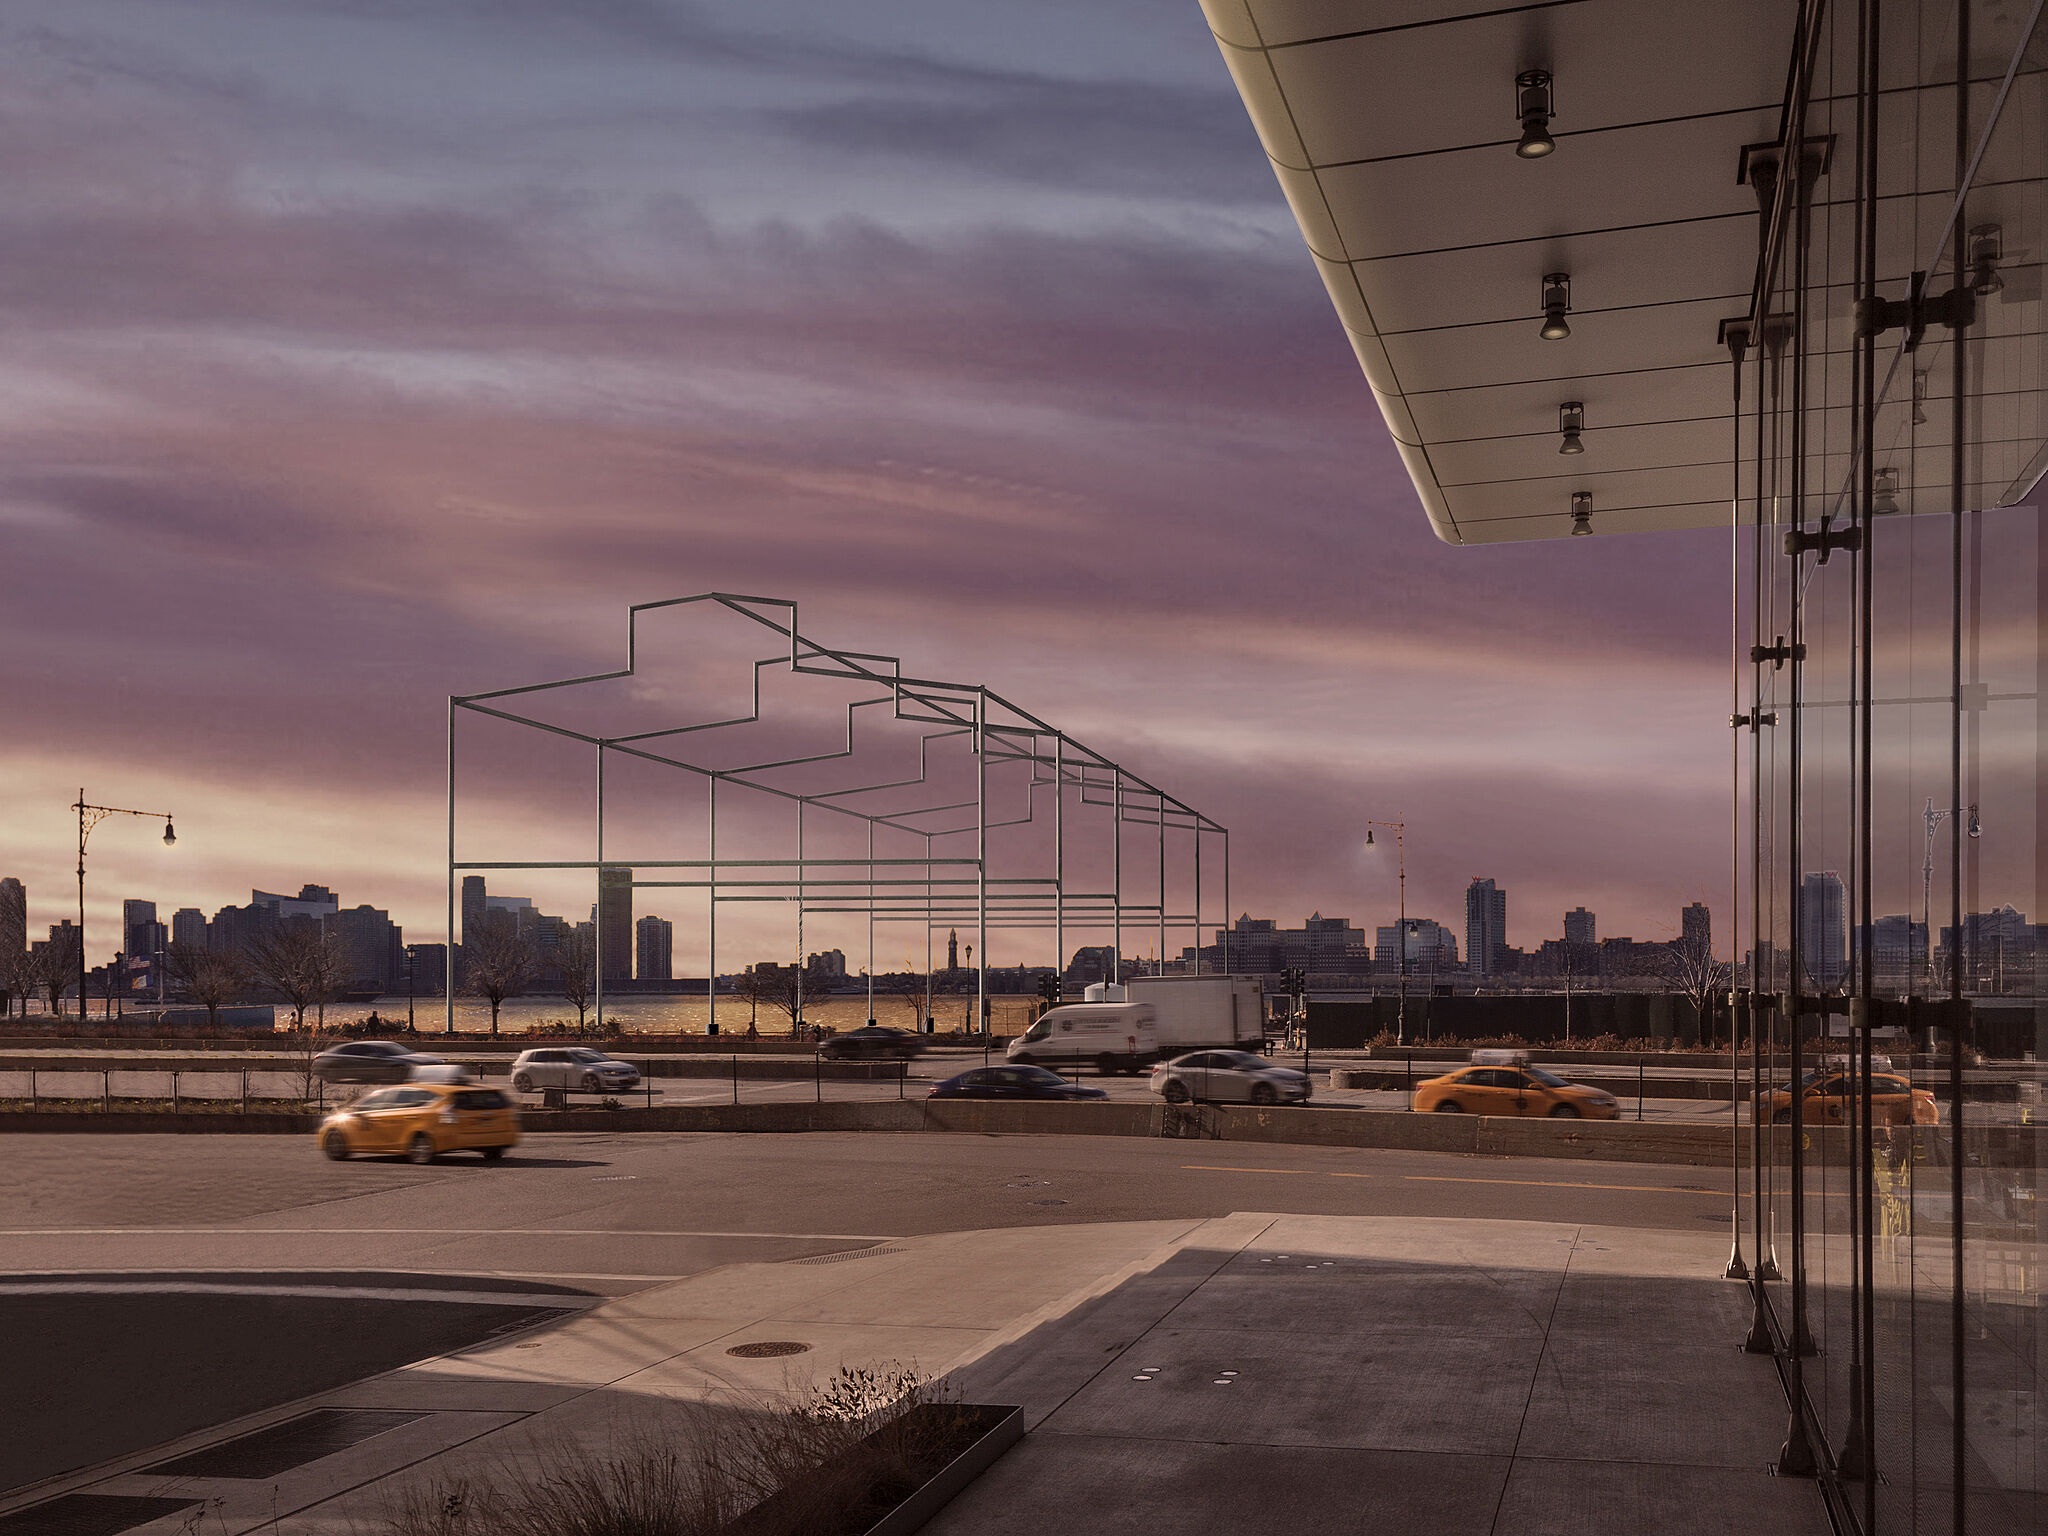 Rendering of a sculpture by David Hammons, resembling the frame of a shed rising from the Hudson River, viewed at sunset